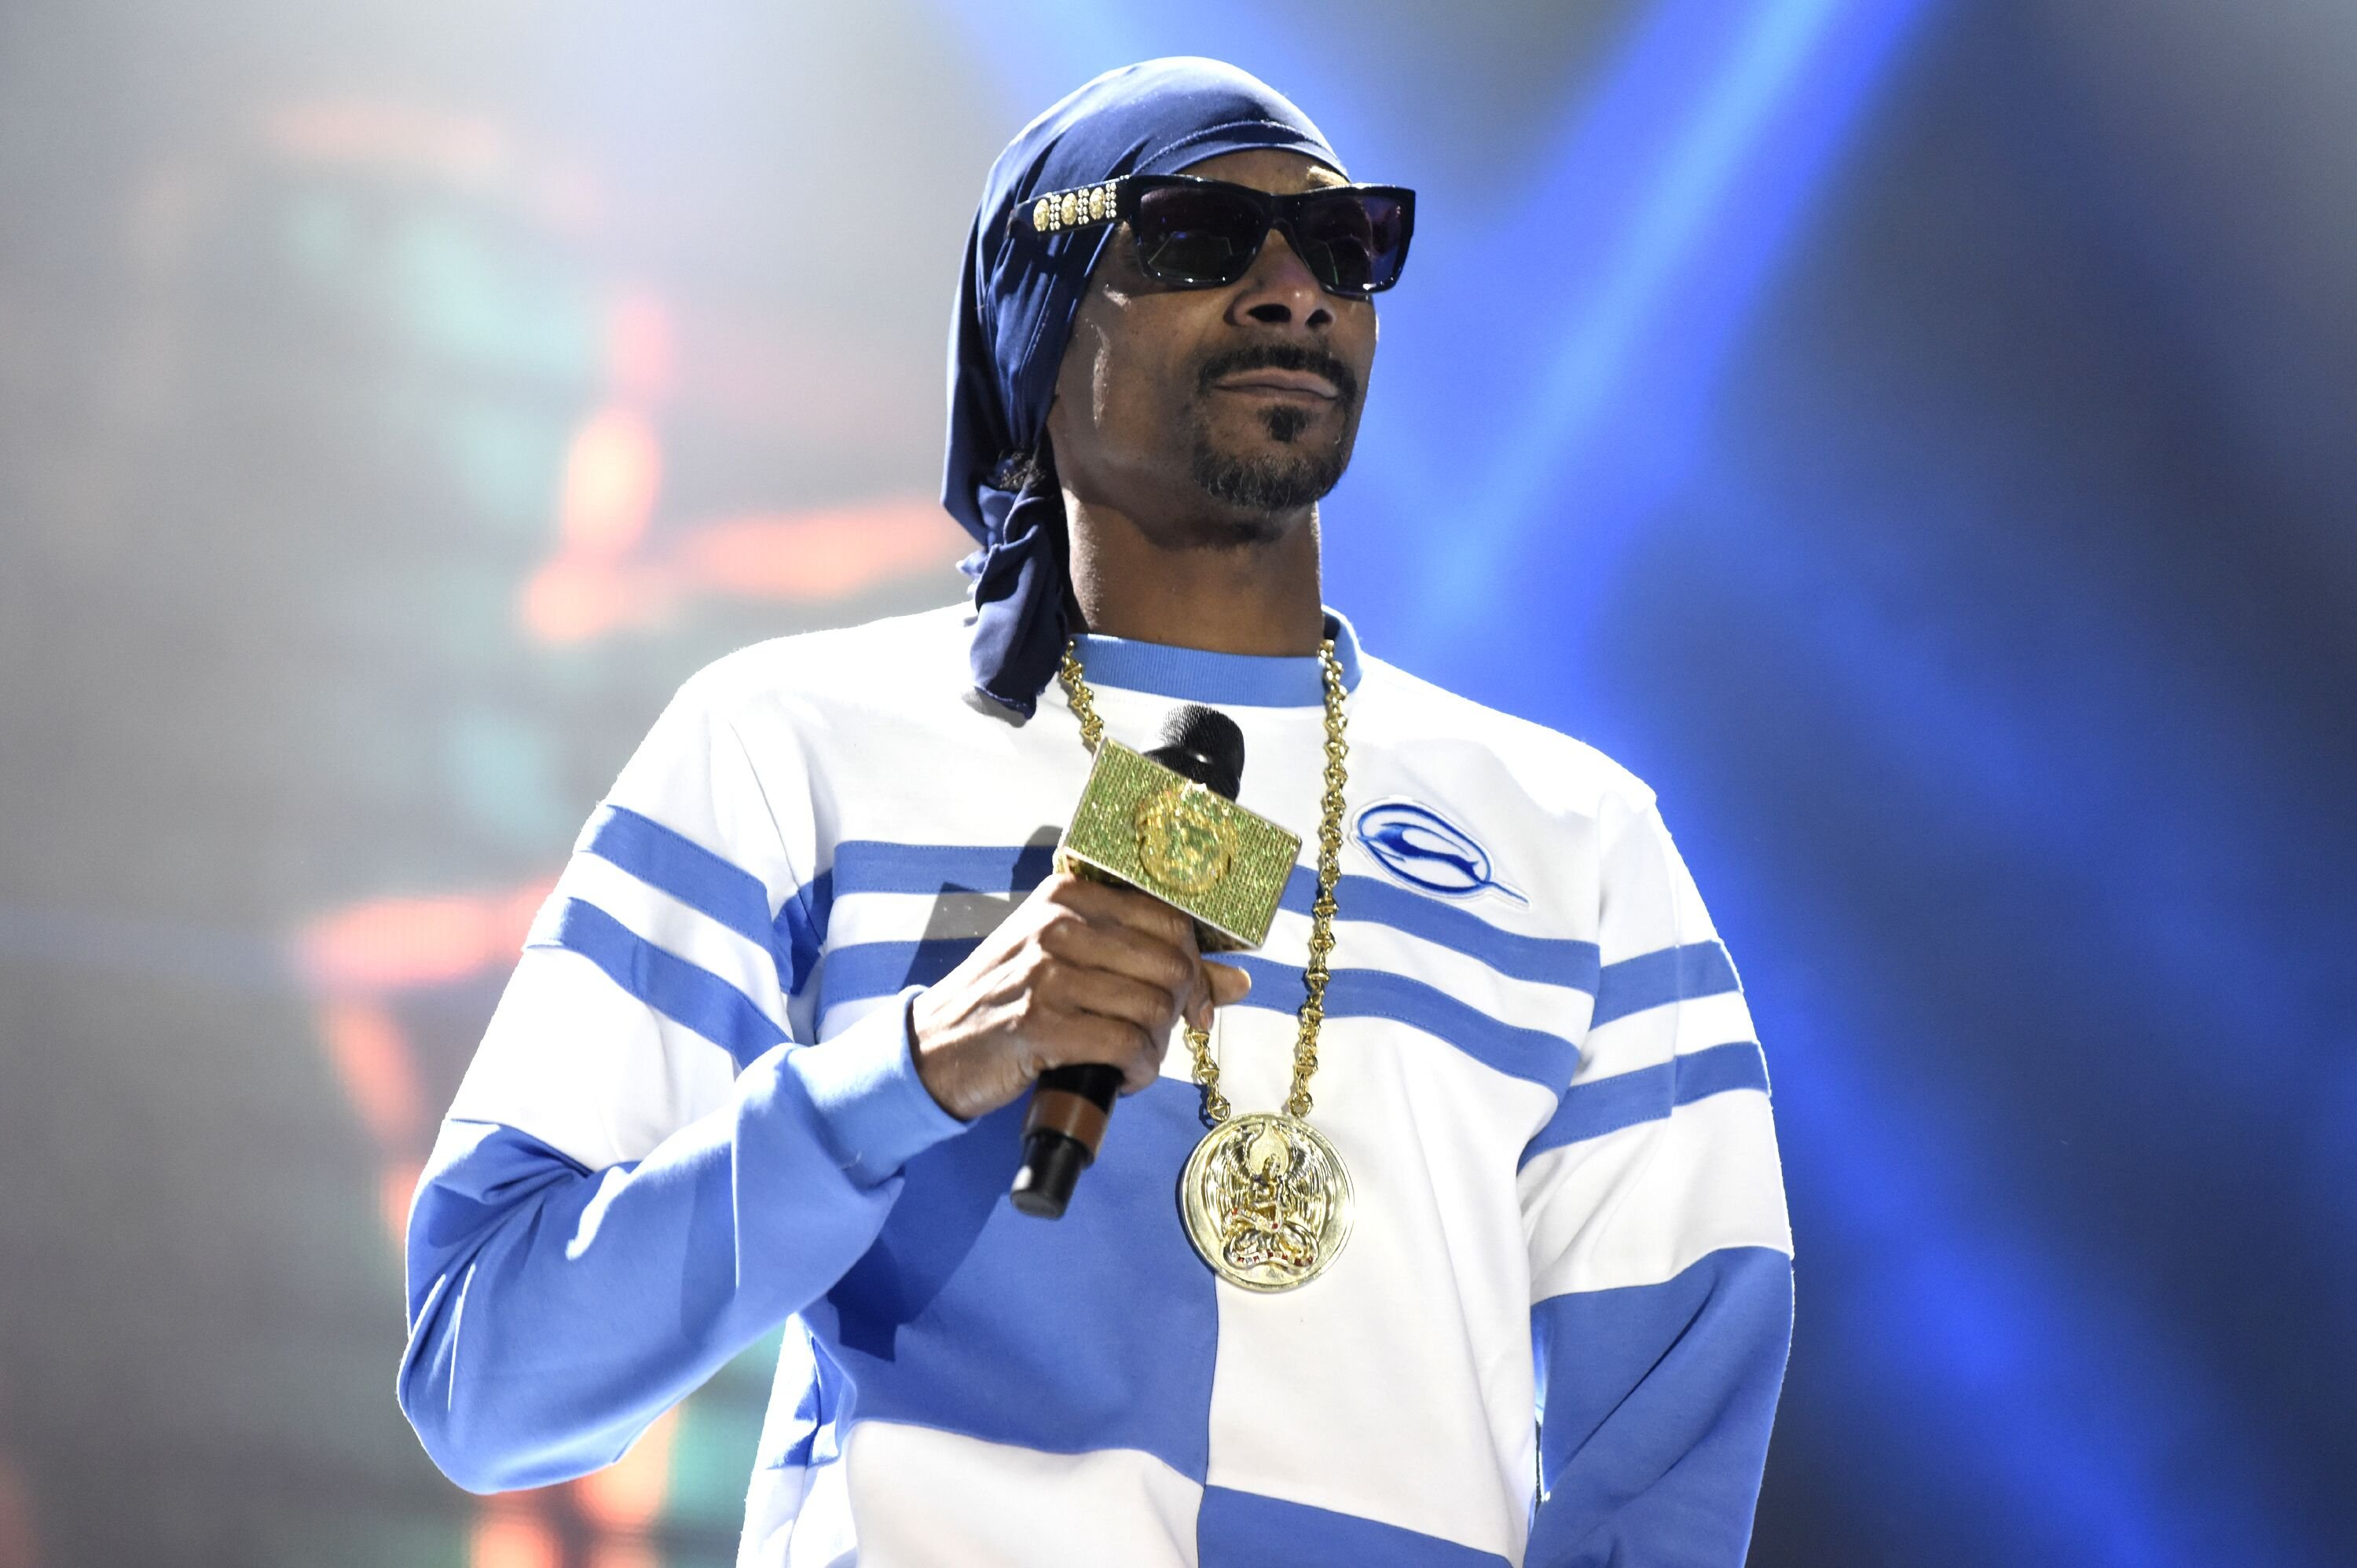 Snoop Dogg at a live performance | Source: Getty Images